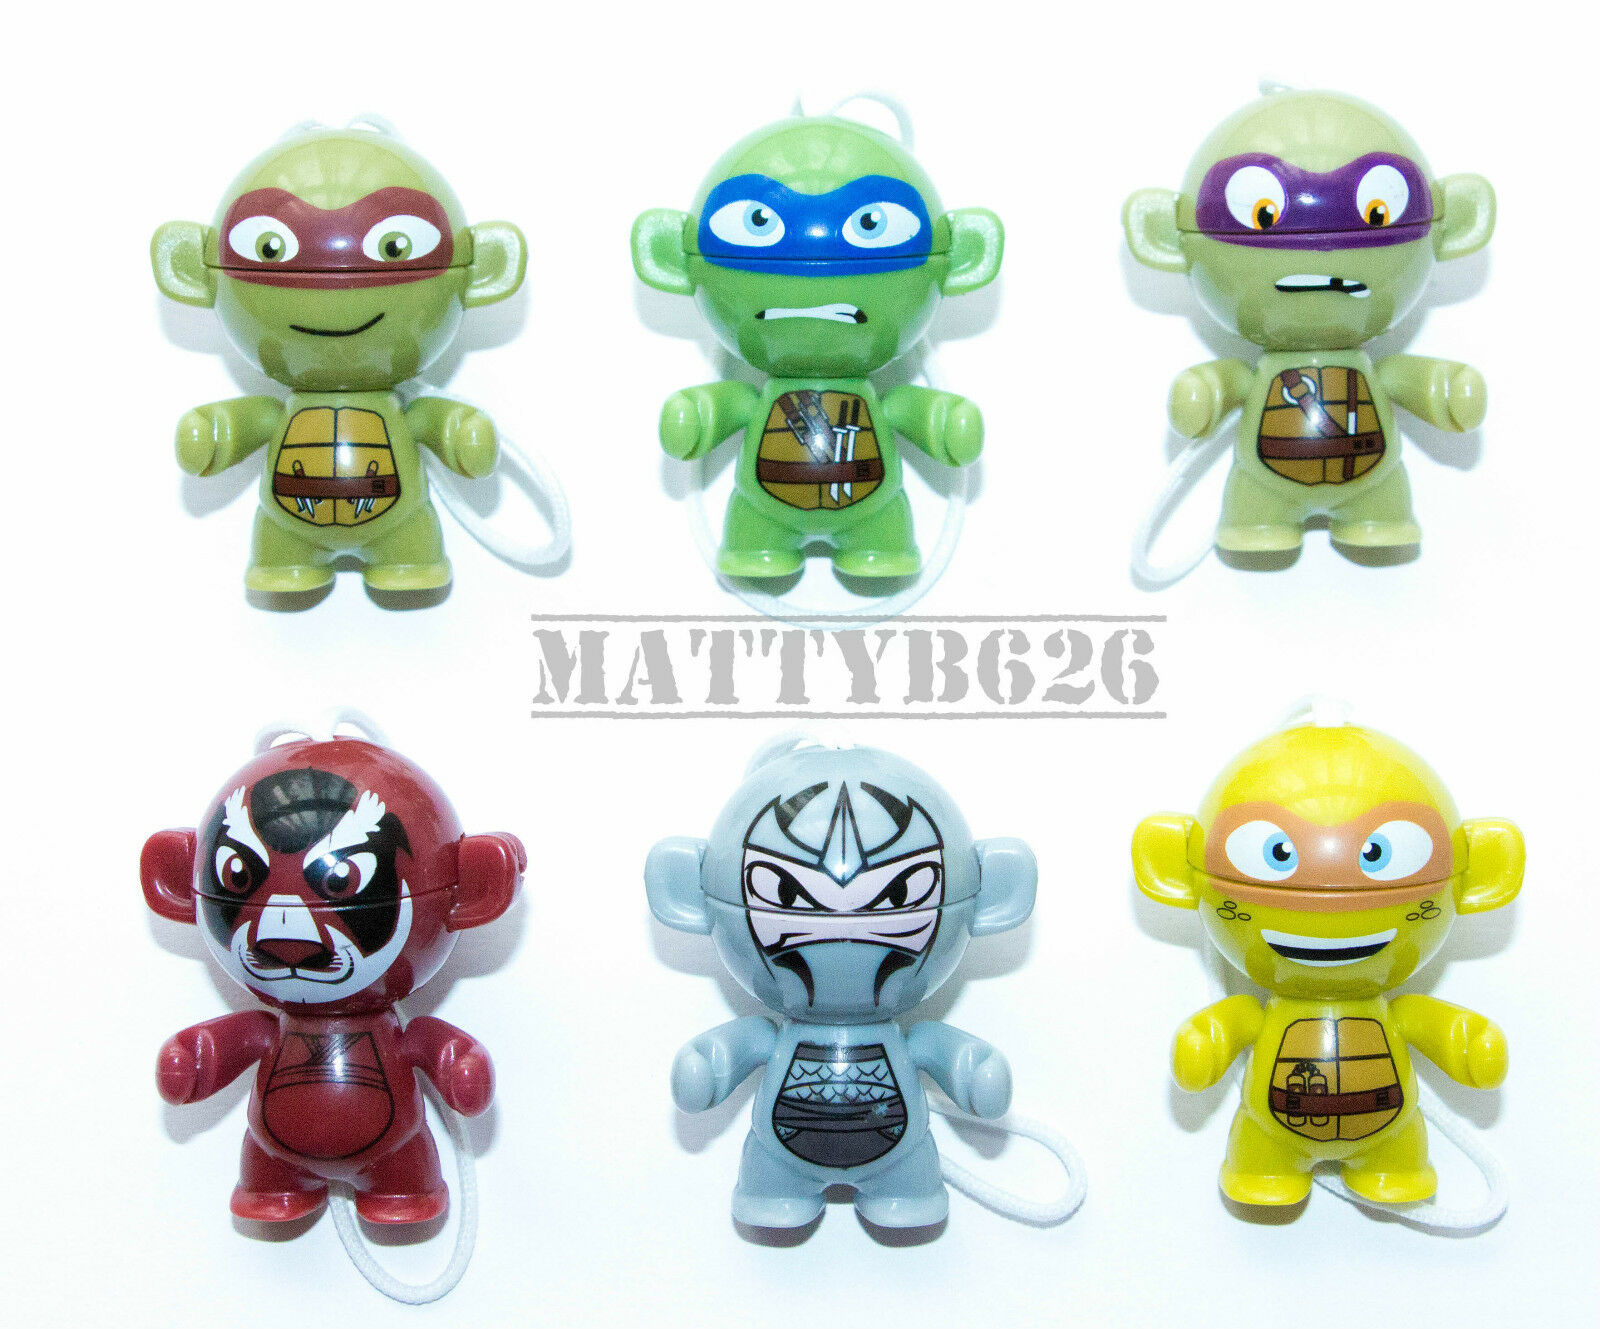 Kinder Surprise Teenage Mutant Ninja Hero Turtles TMNT Twisthead Figures 2016 UK